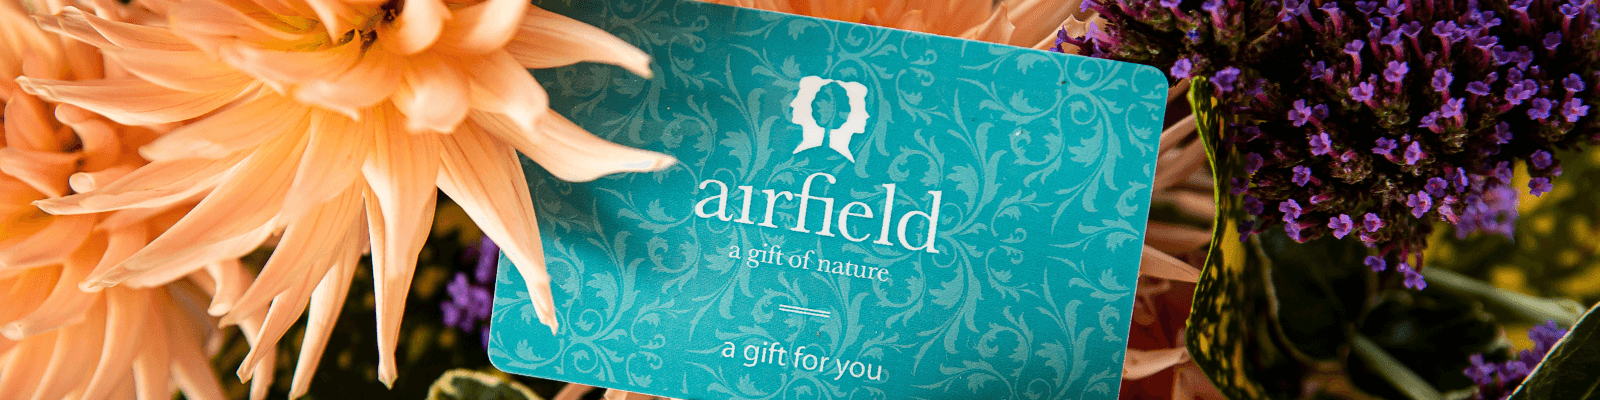 https://www.airfield.ie/wp-content/uploads/2021/03/A-Gift-Card-from-Airfield-Estate-1.png